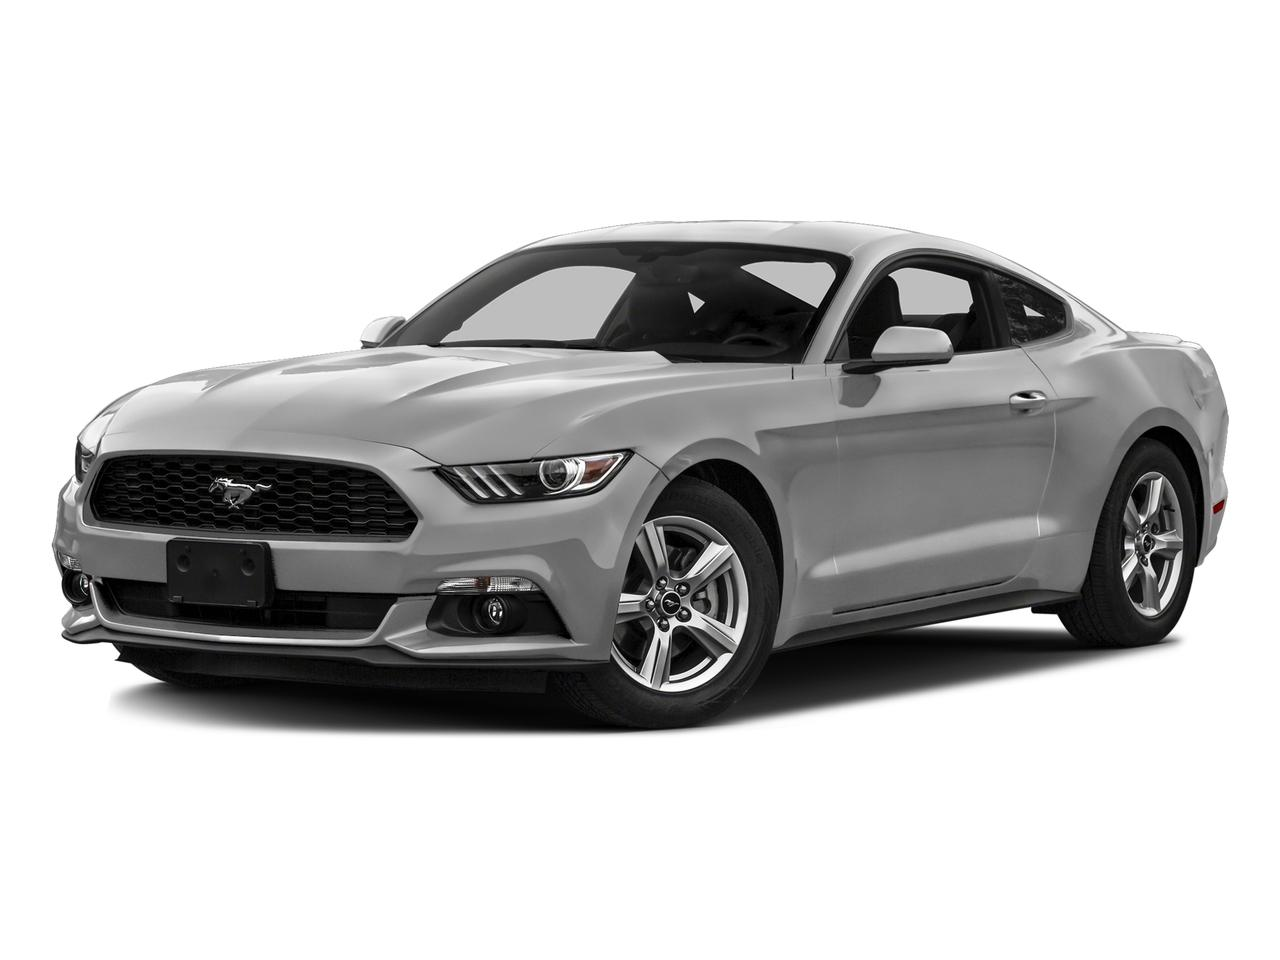 2016 Ford Mustang Vehicle Photo in Elyria, OH 44035